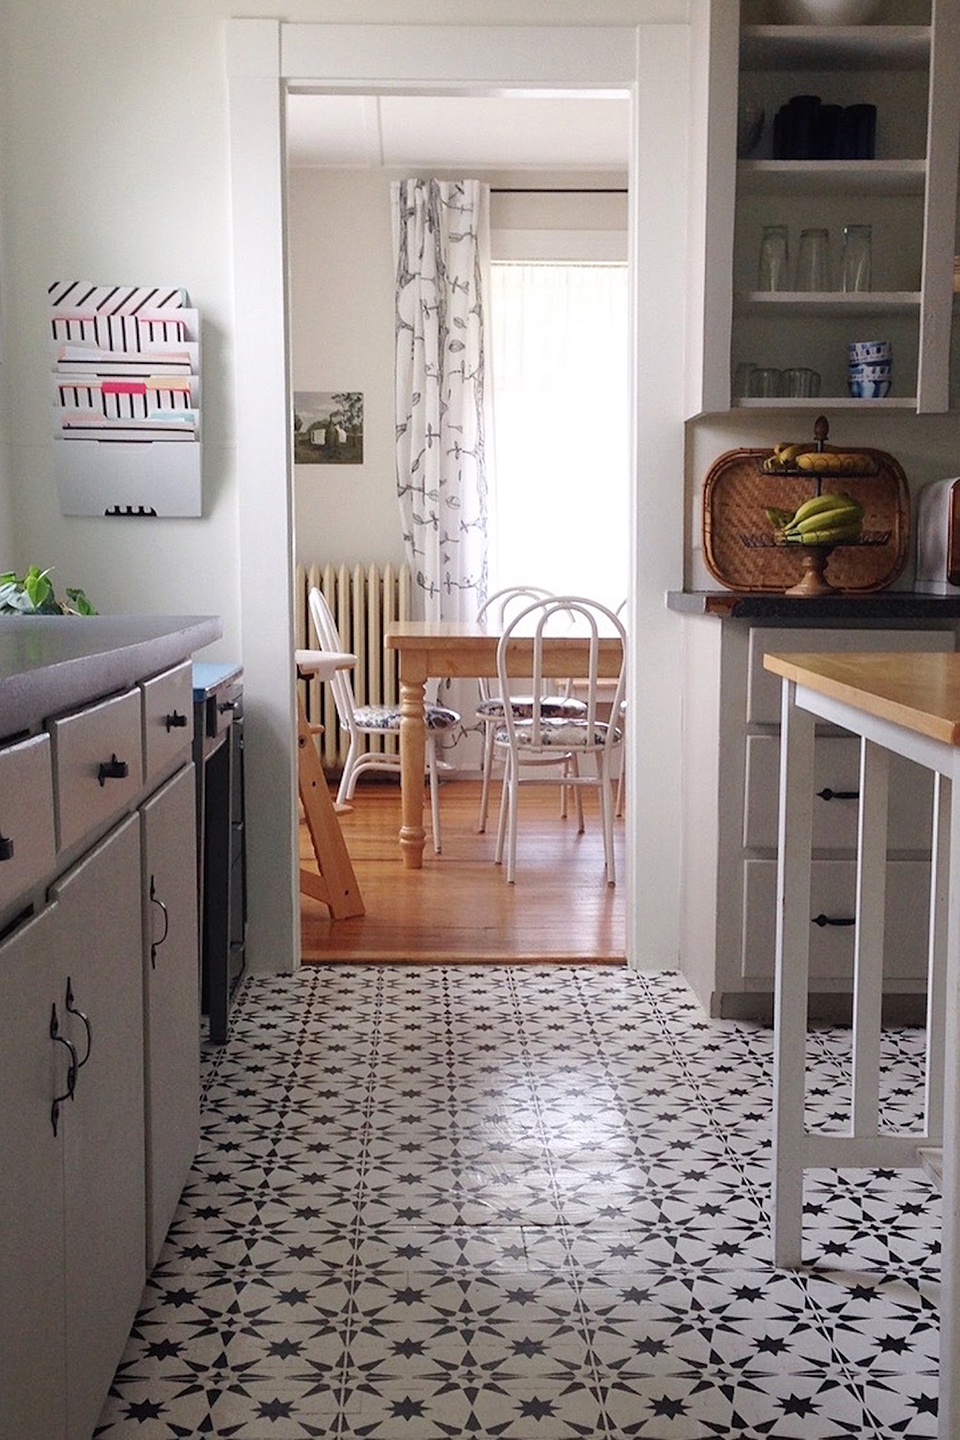 Kitchen Remodel On A Budget: 5 Low-Cost Ideas To Help You